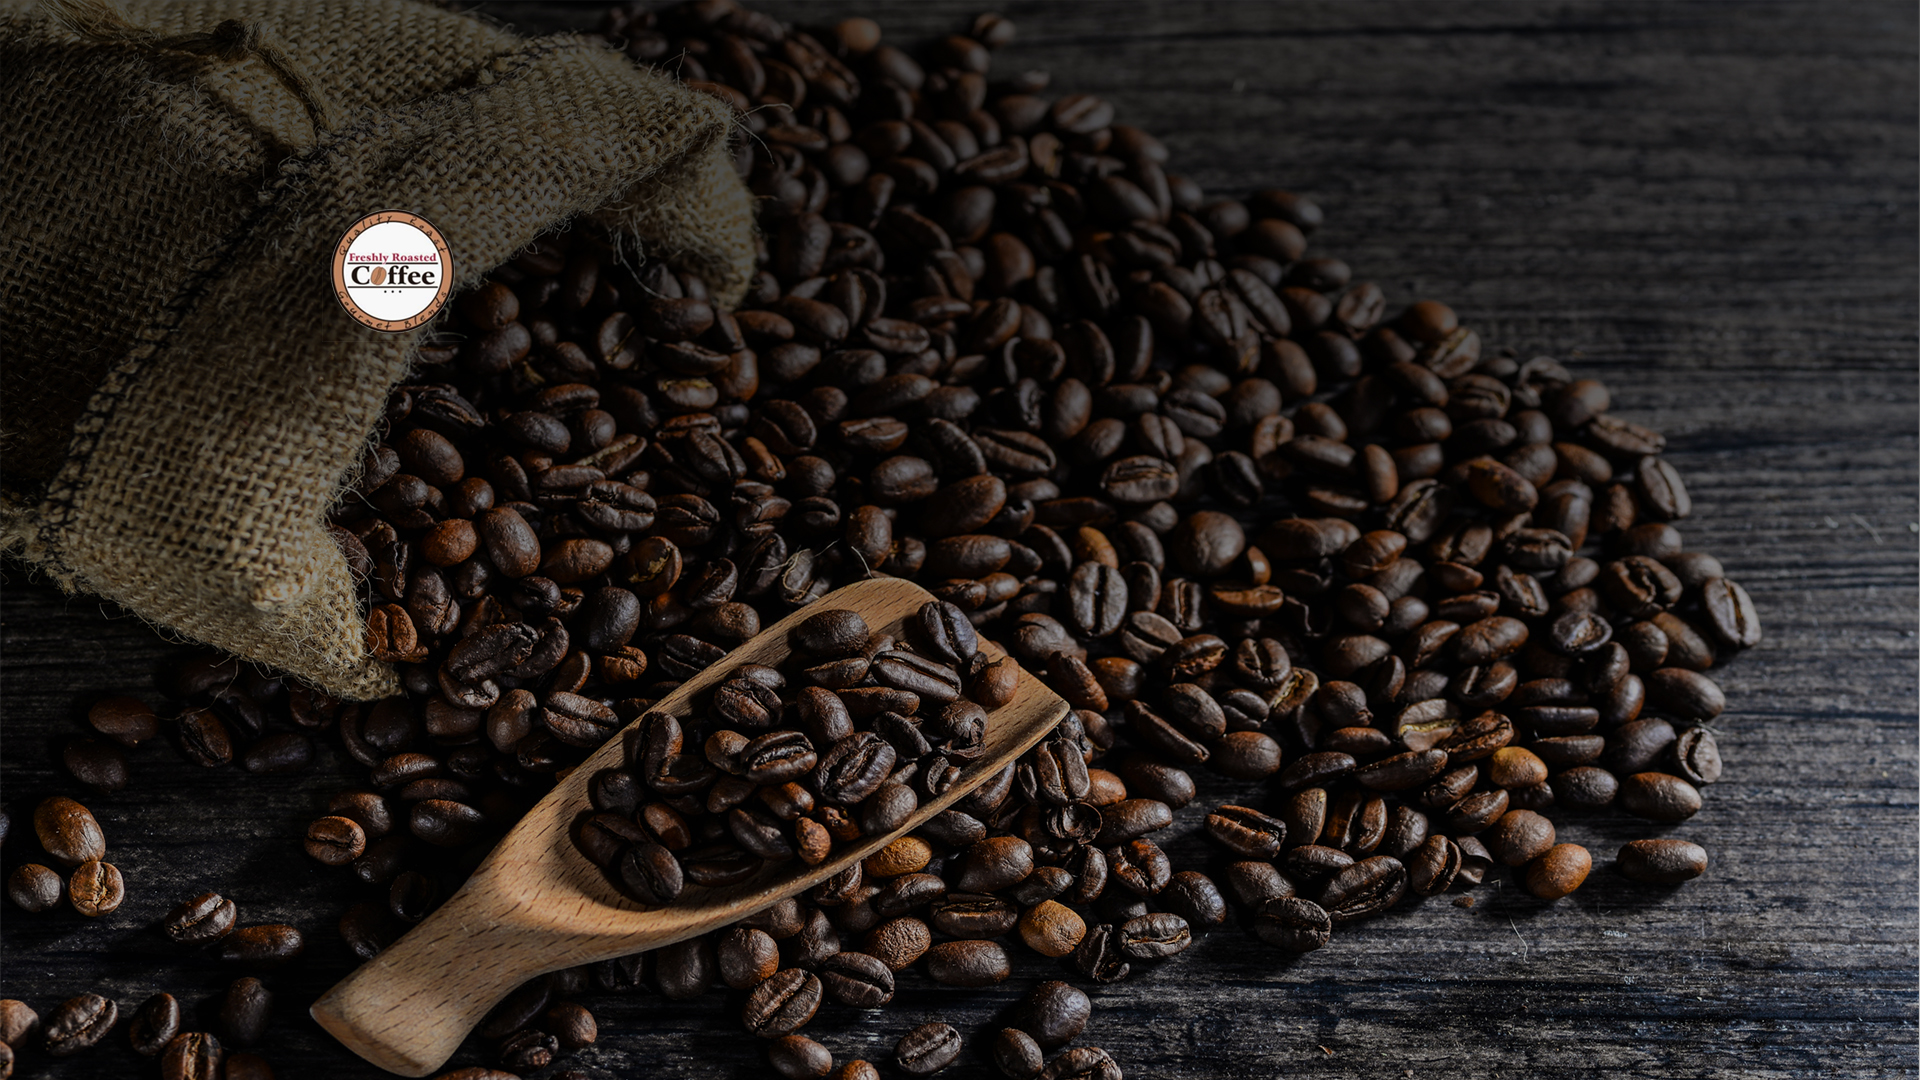 <h2>Freshly Roasted Coffee</h2><p>Εμπόριo Καφέ - Χονδρική Πώληση Λάρισα</p><div class='bgslideshowmore'><a href='http://www.spanoszaharias.4ty.gr/contact.php?l=el' >Περισσότερα...</a></div>